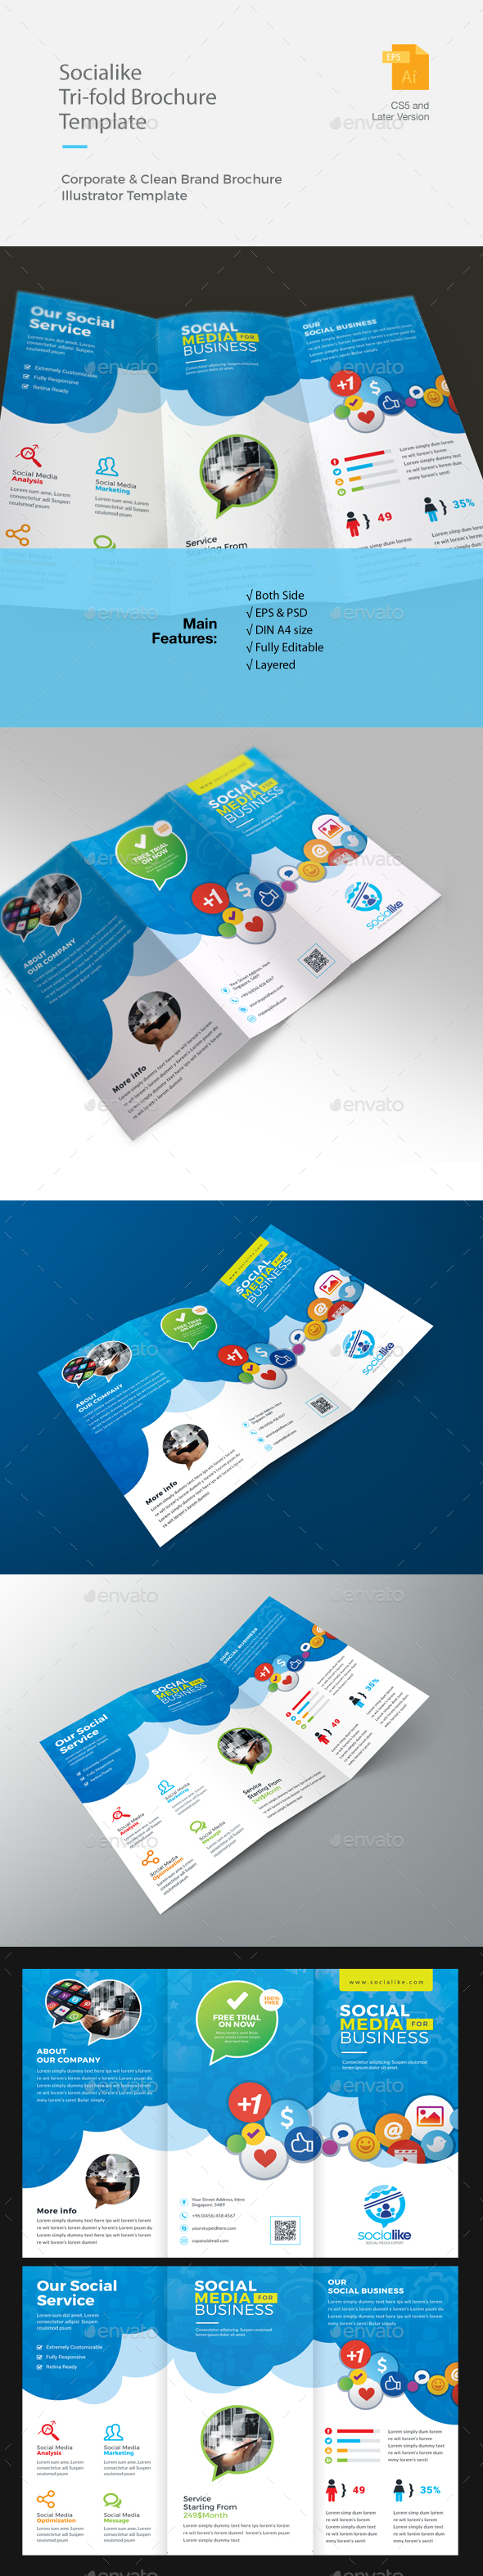 Social Media Trifold Brochure - Corporate Brochures